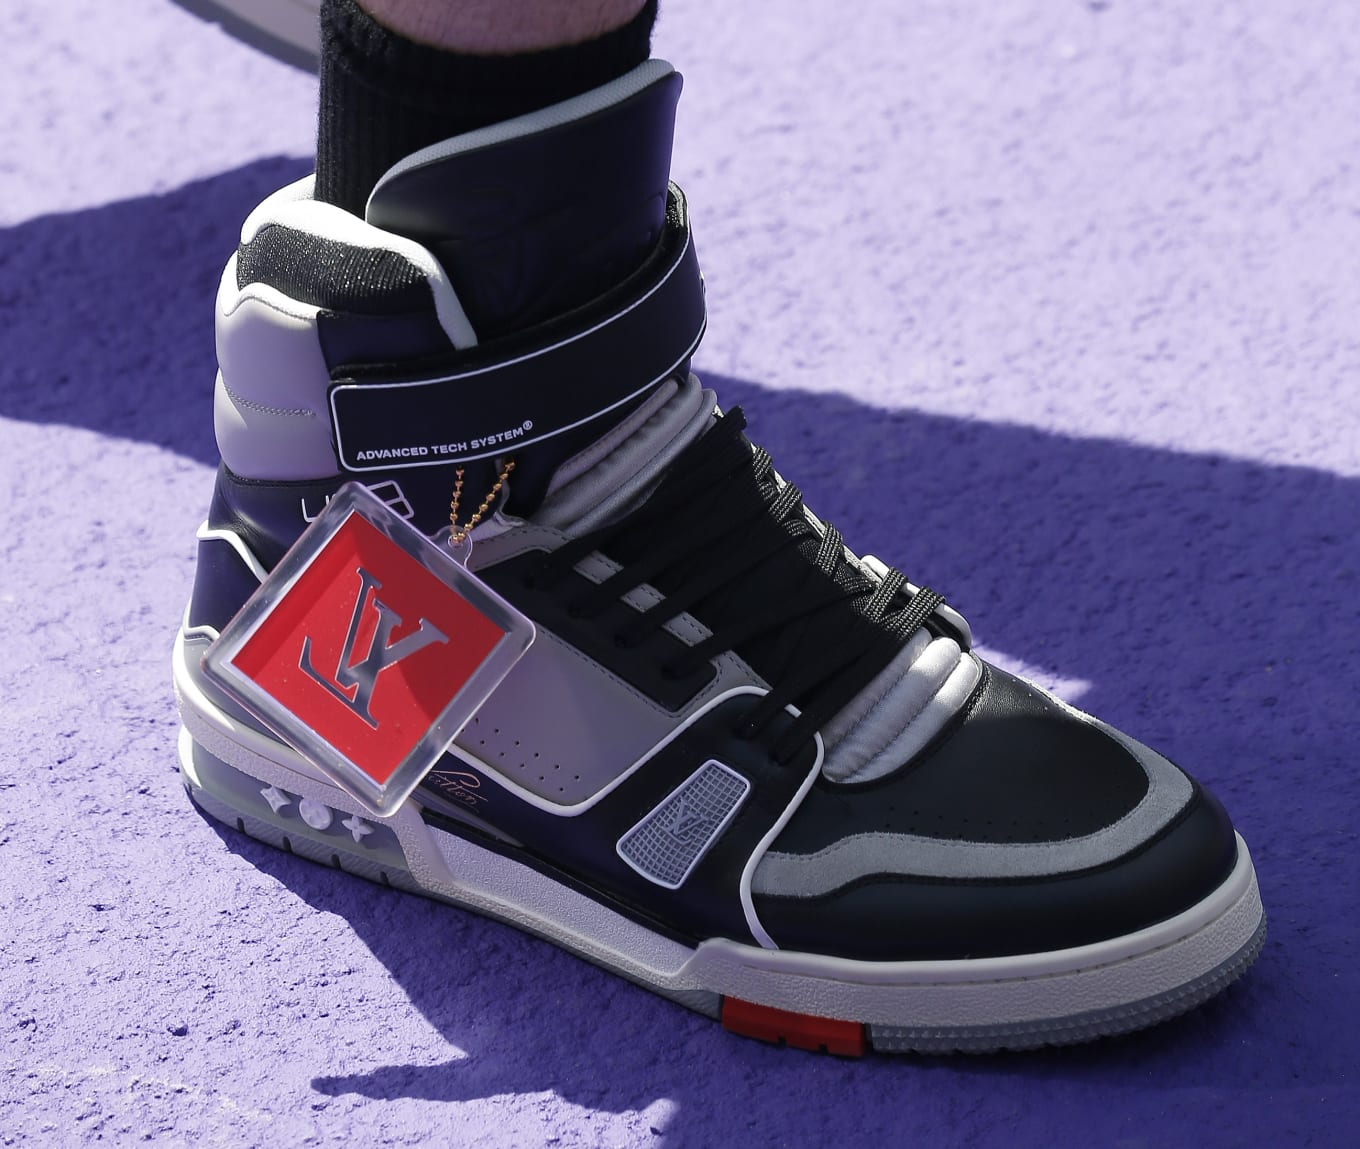 4156a4e1d61427 ... Virgil Abloh s Louis Vuitton Sneakers. Straight from the Paris Fashion  Week runway.